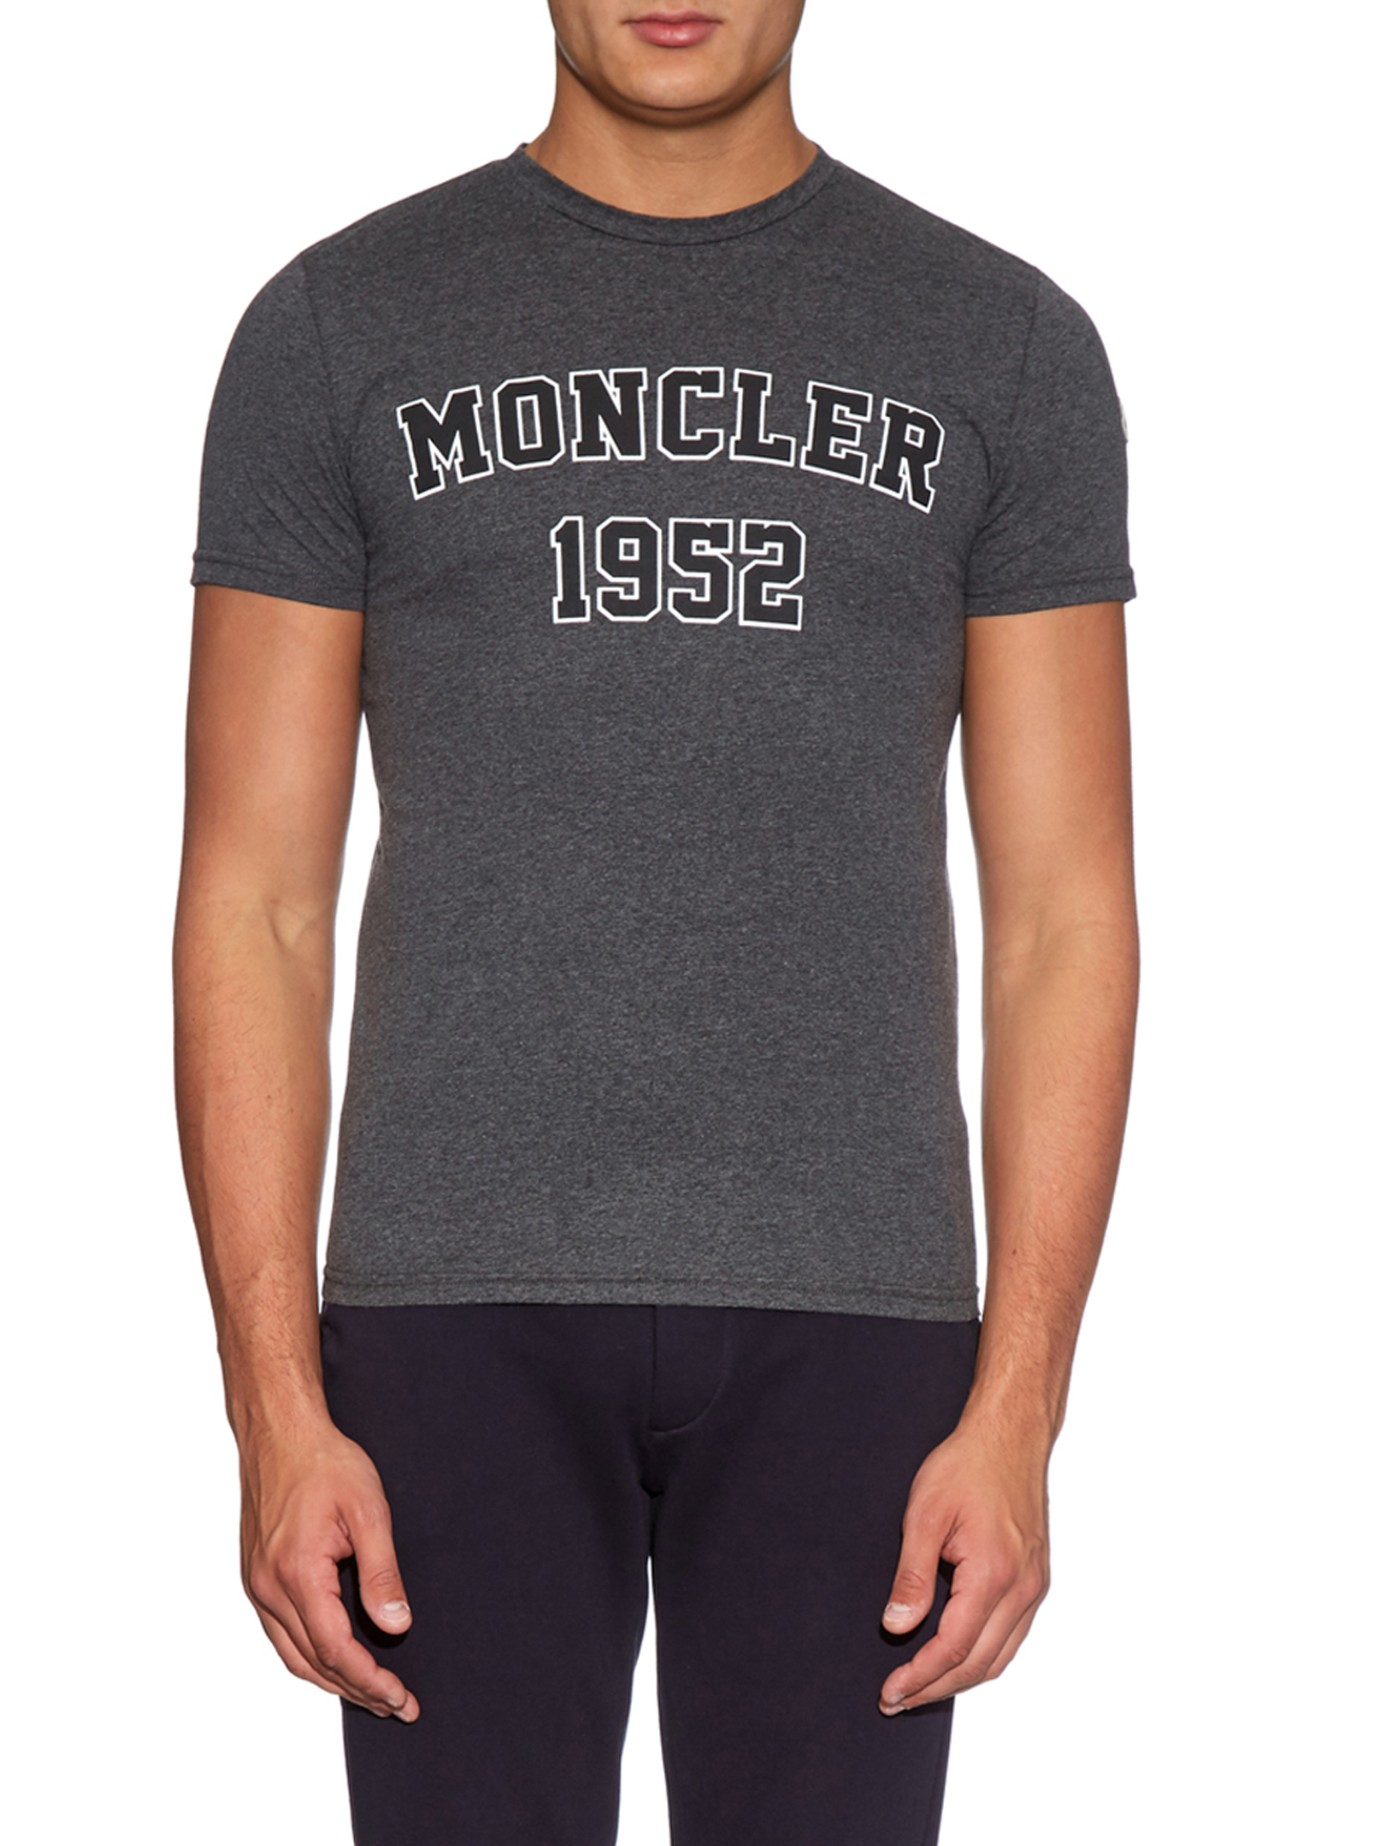 moncler 1952 t shirt. Black Bedroom Furniture Sets. Home Design Ideas